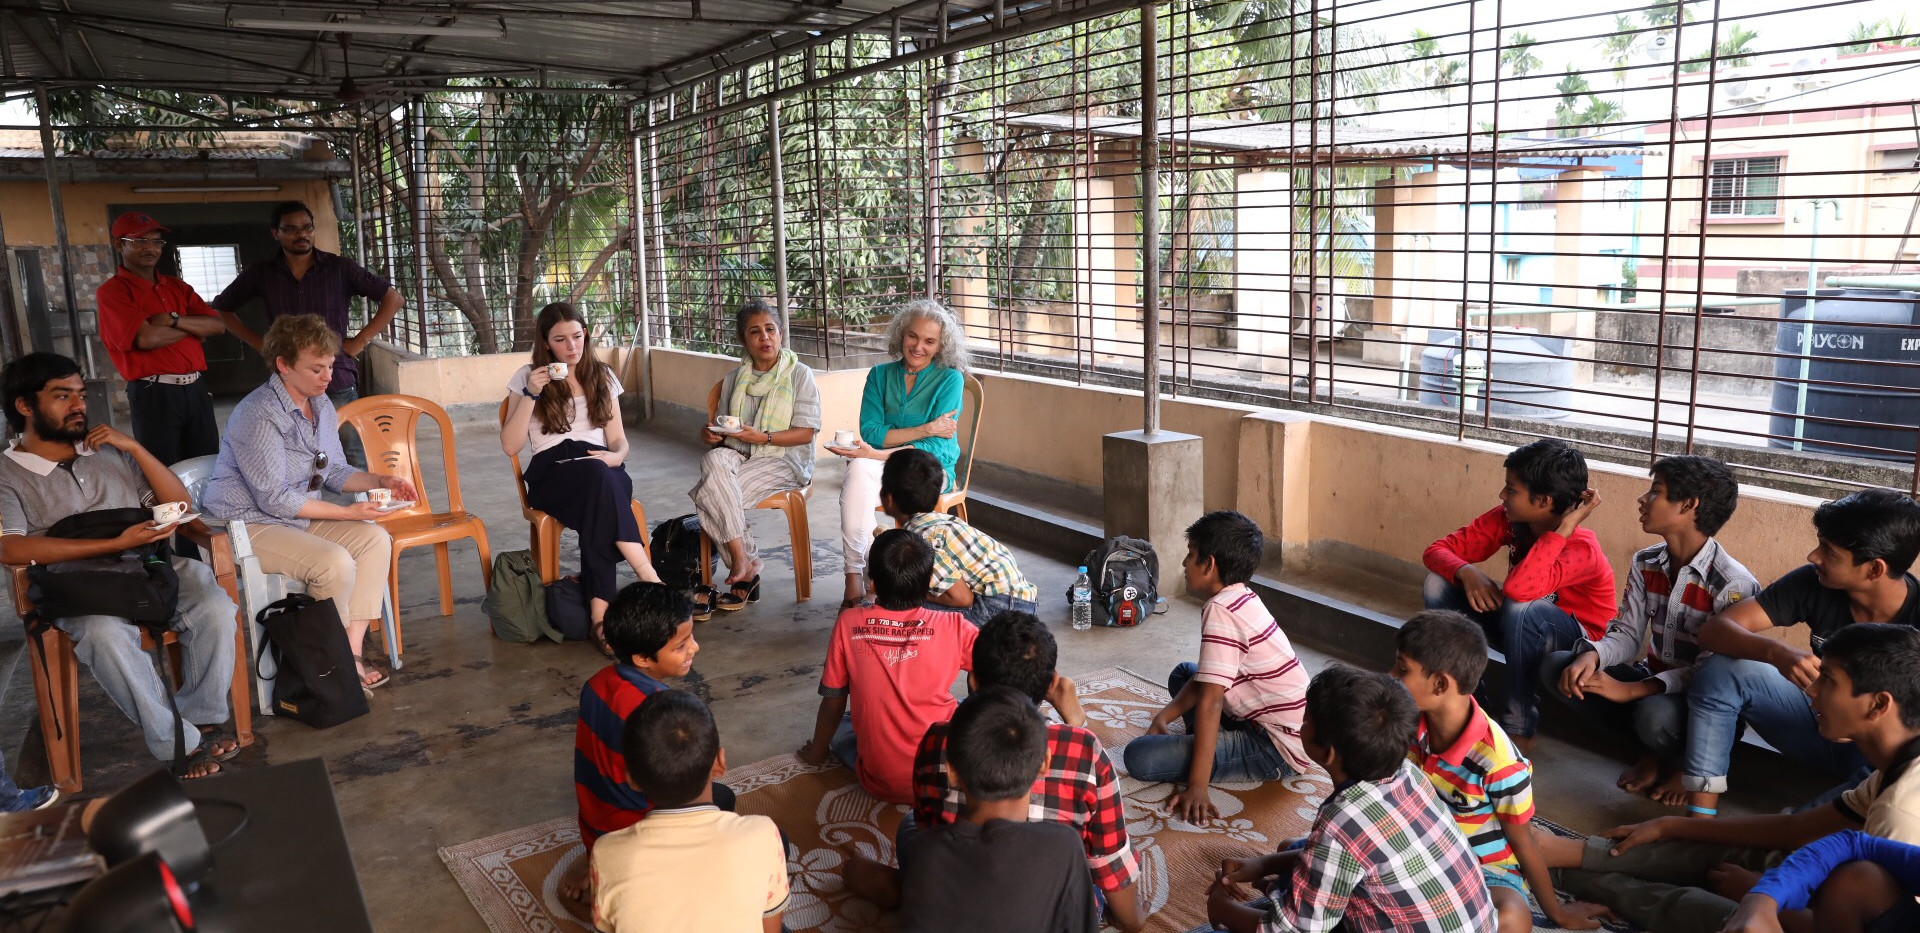 Meeting boys at the boy's home